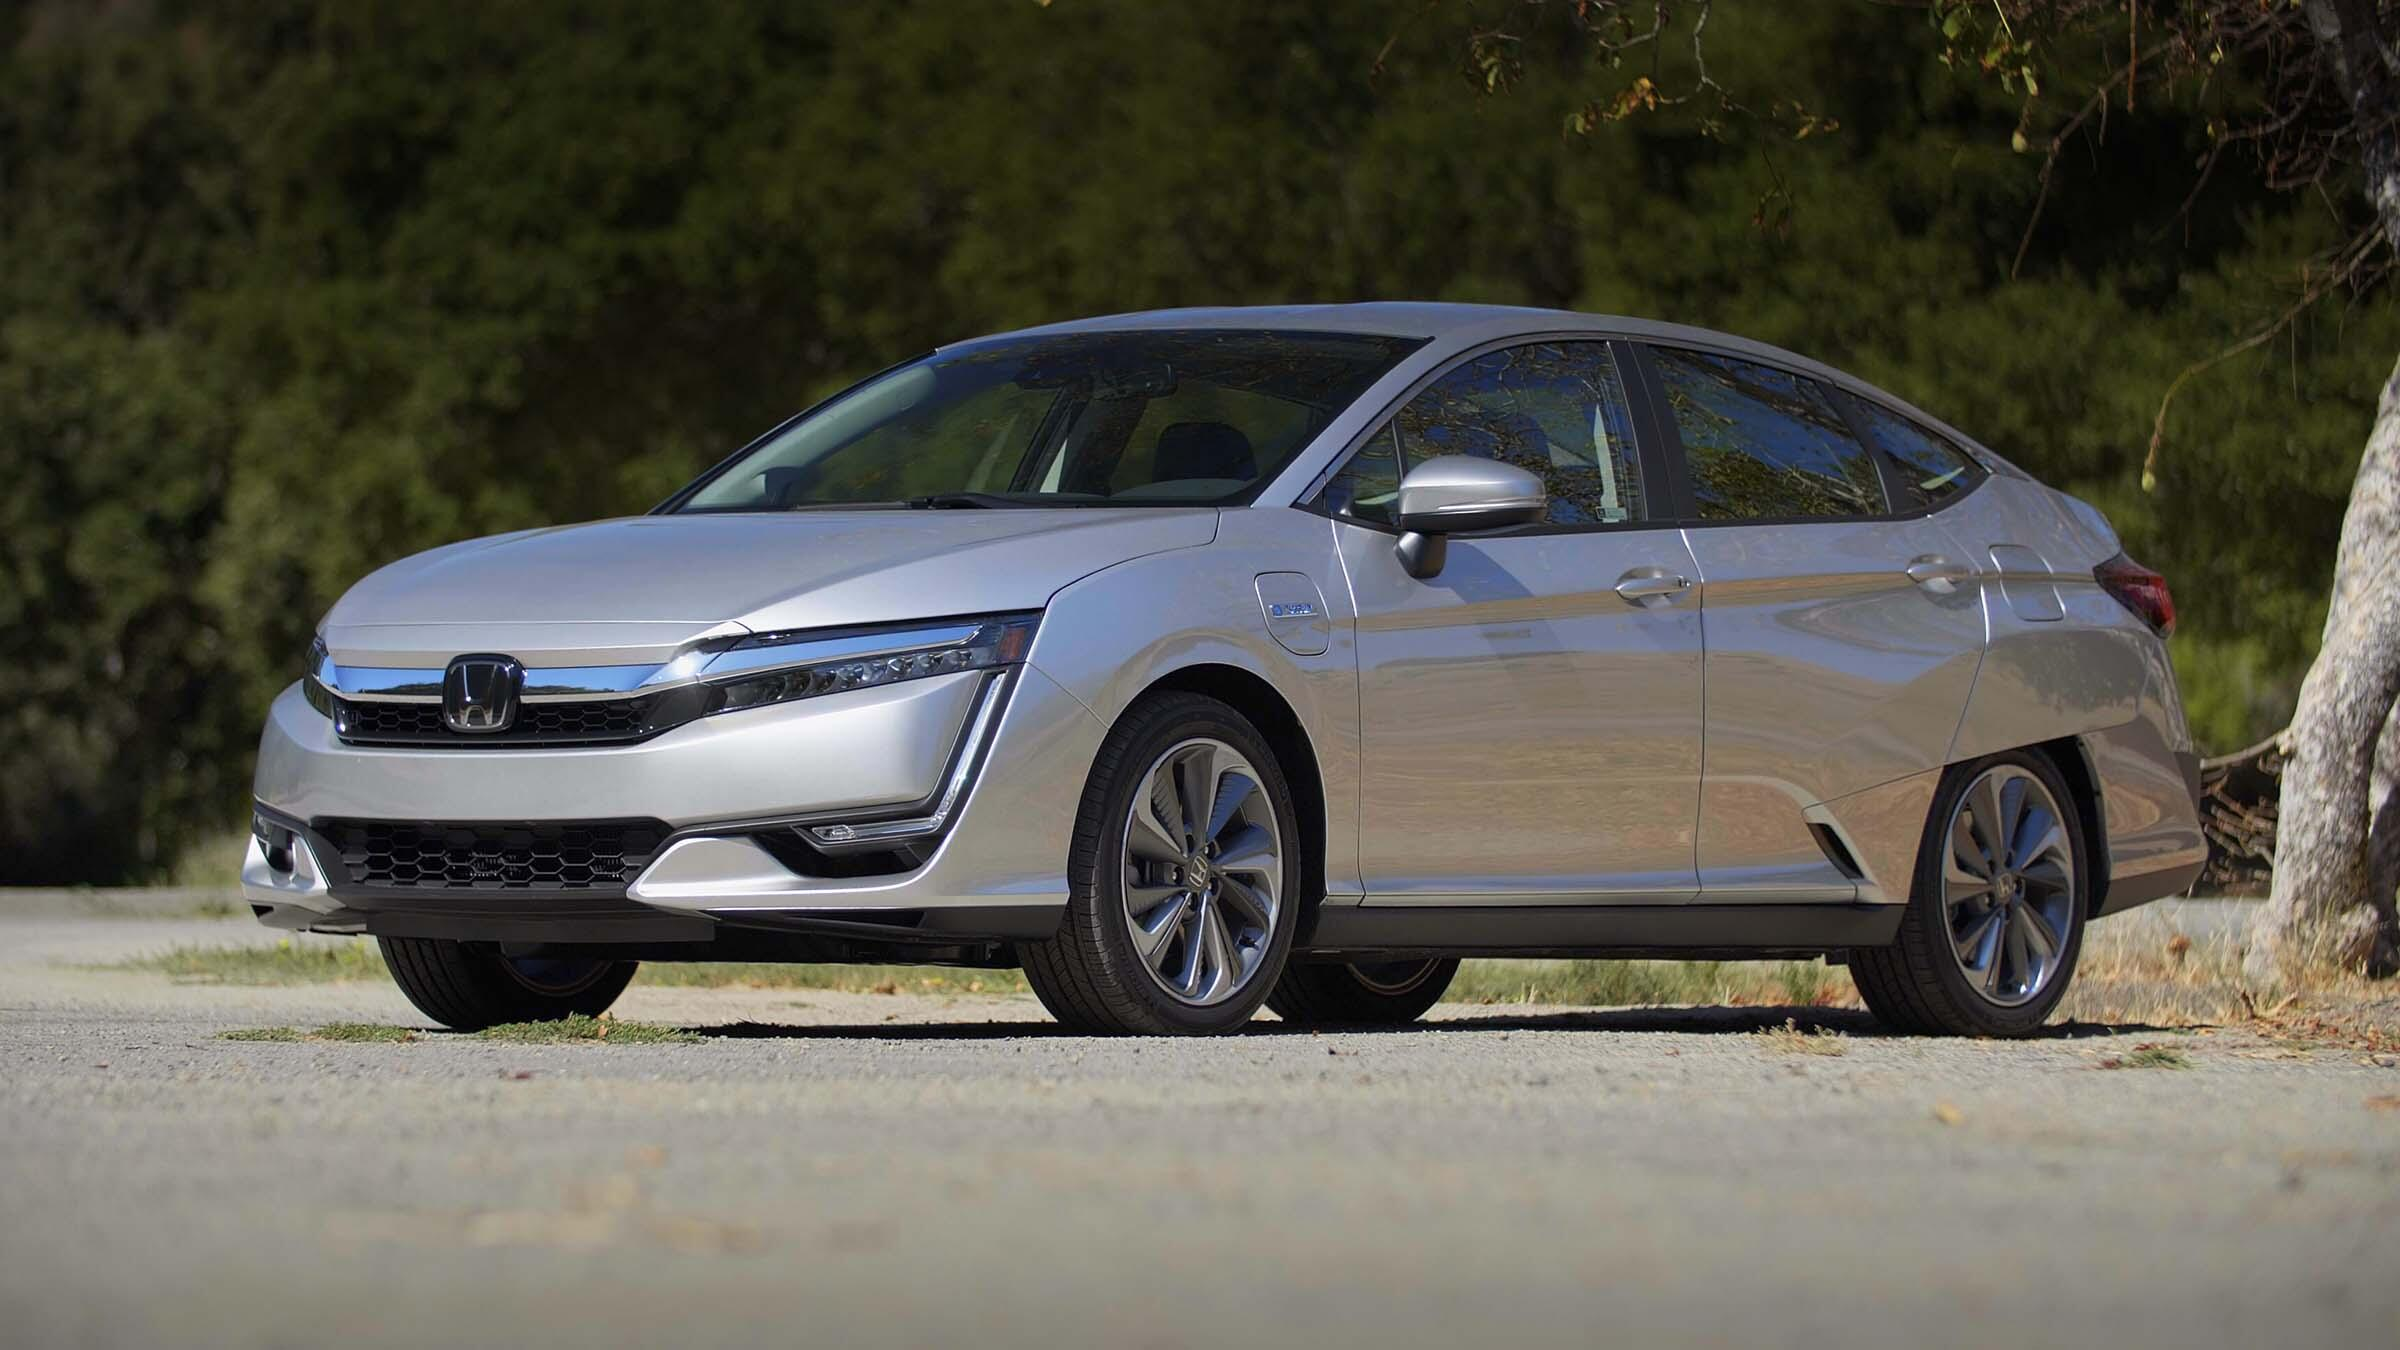 Video: 2019 Honda Clarity PHEV: Fuel-efficient and flexible